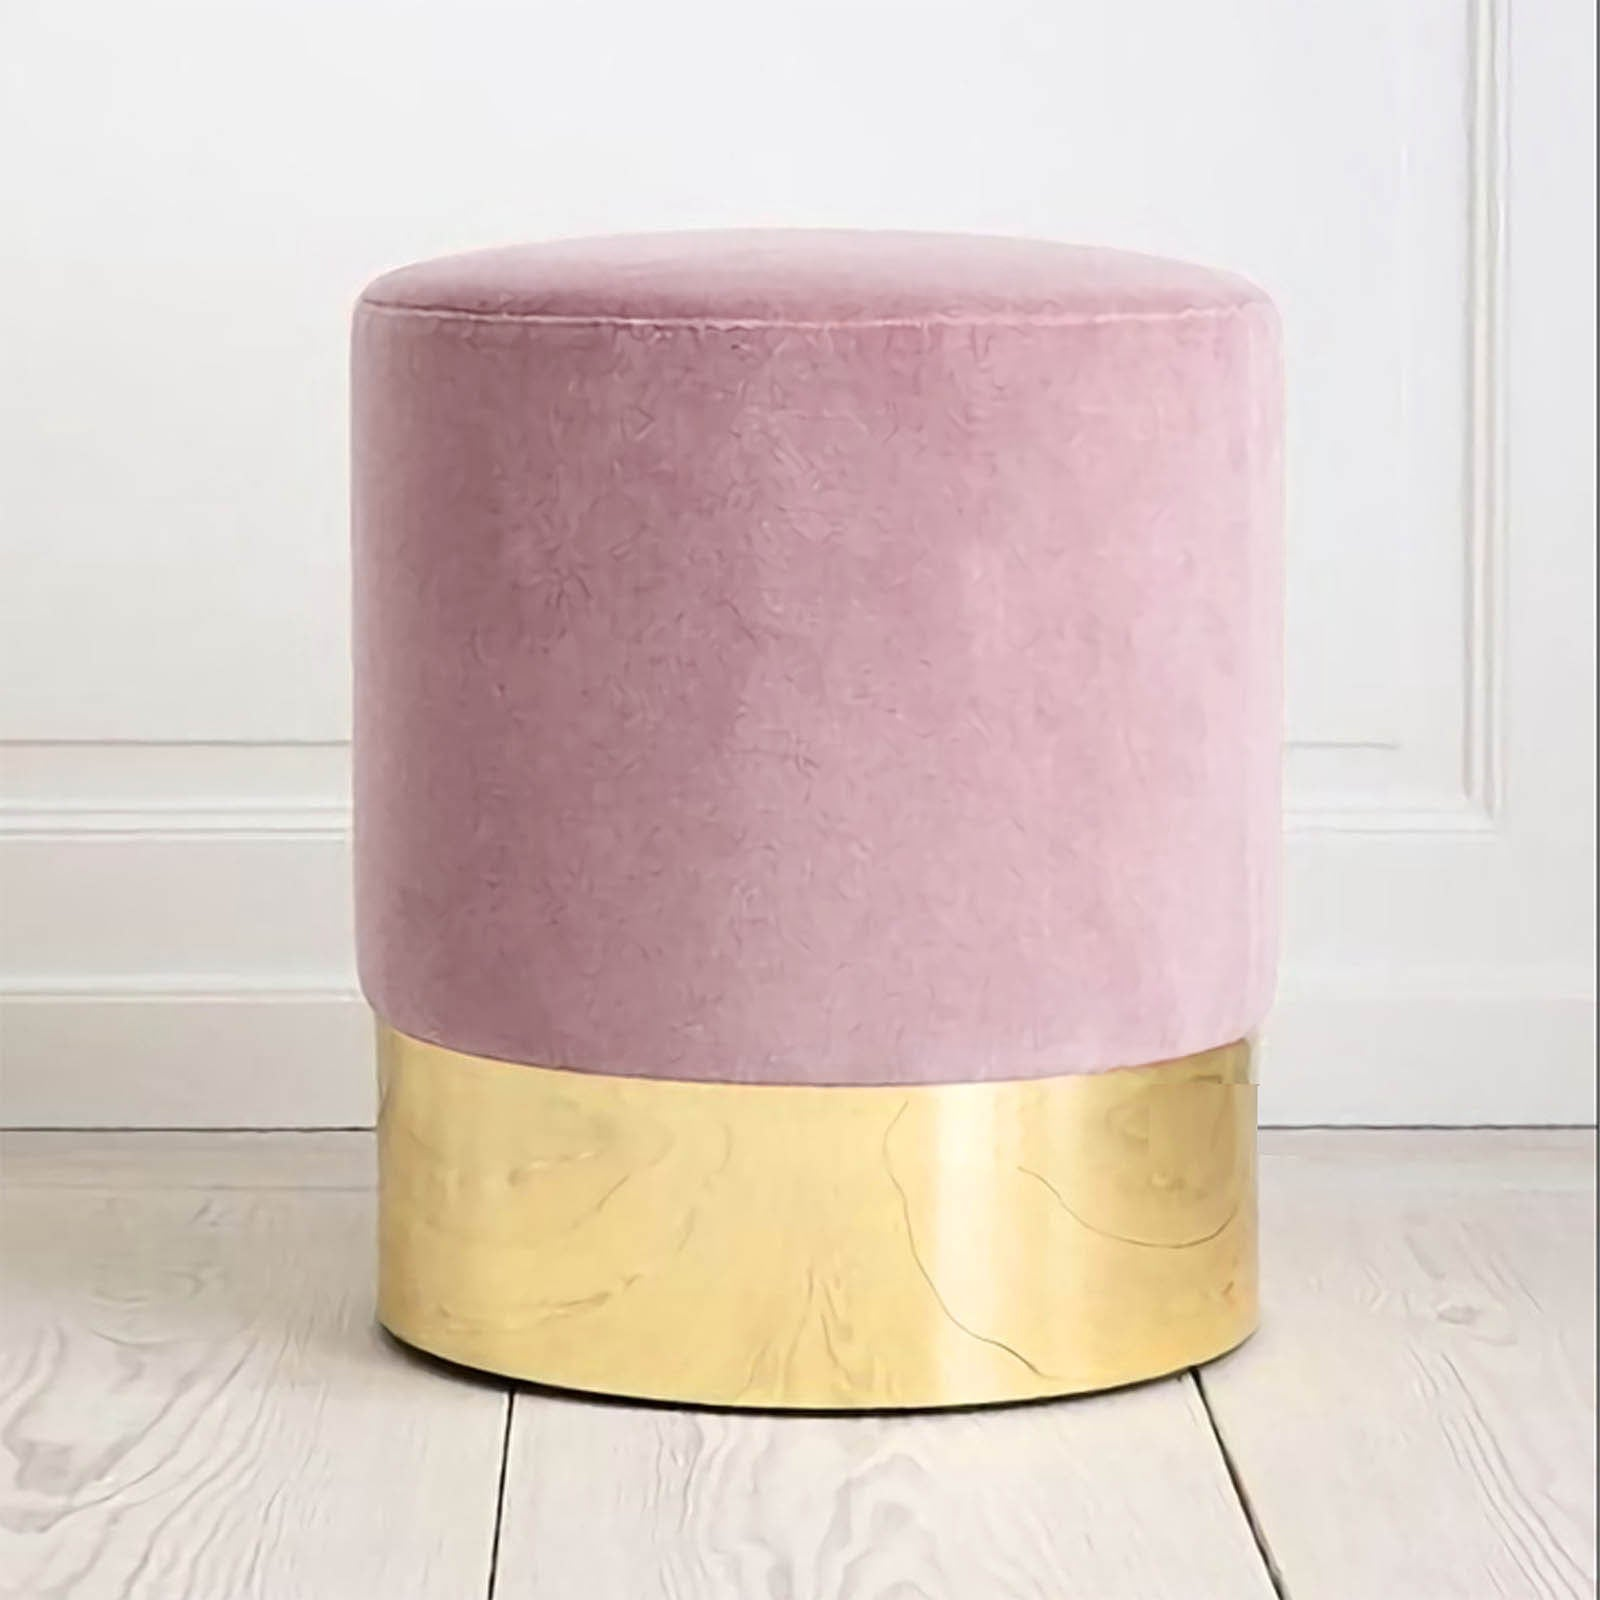 Velletri  Stool TG-196-P -  مقعد فيليتري - Shop Online Furniture and Home Decor Store in Dubai, UAE at ebarza